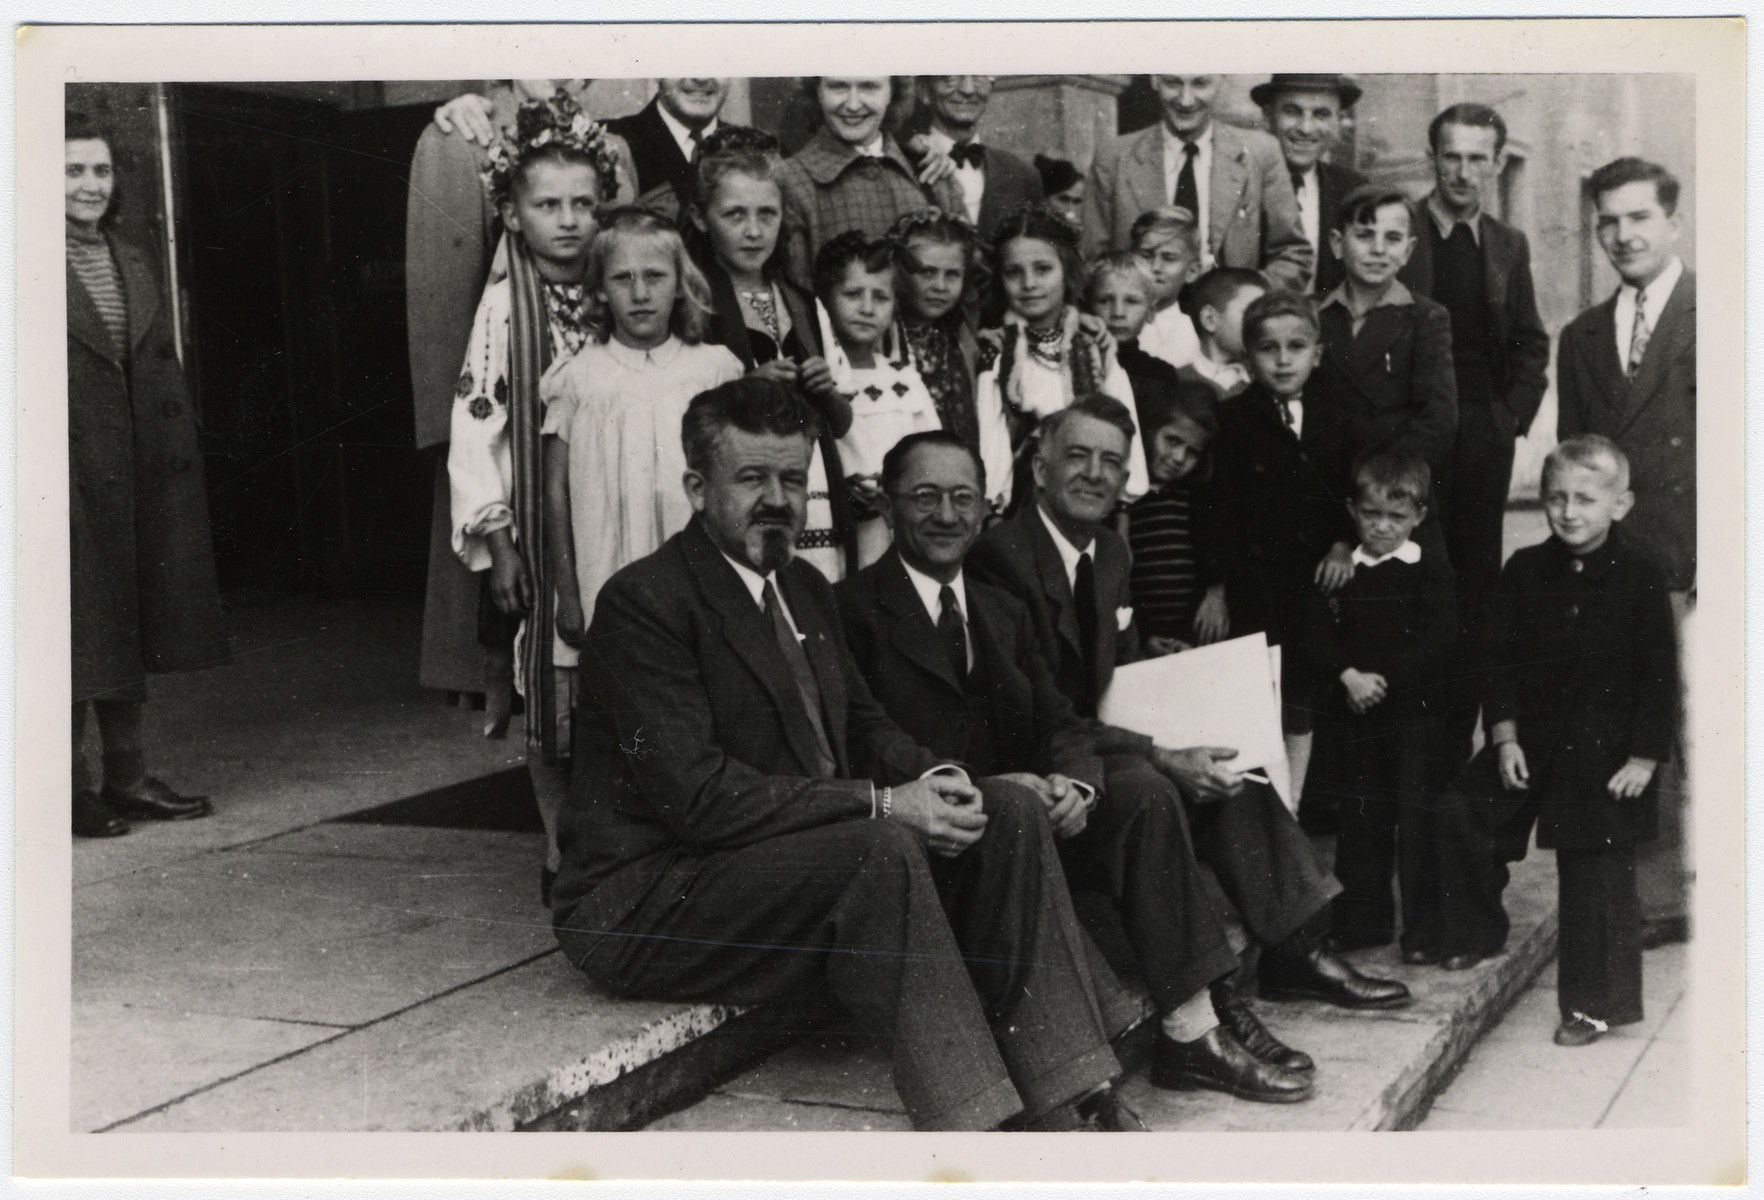 Group portrait of children and adults awaiting repatriation from Berlin to the American Zone.